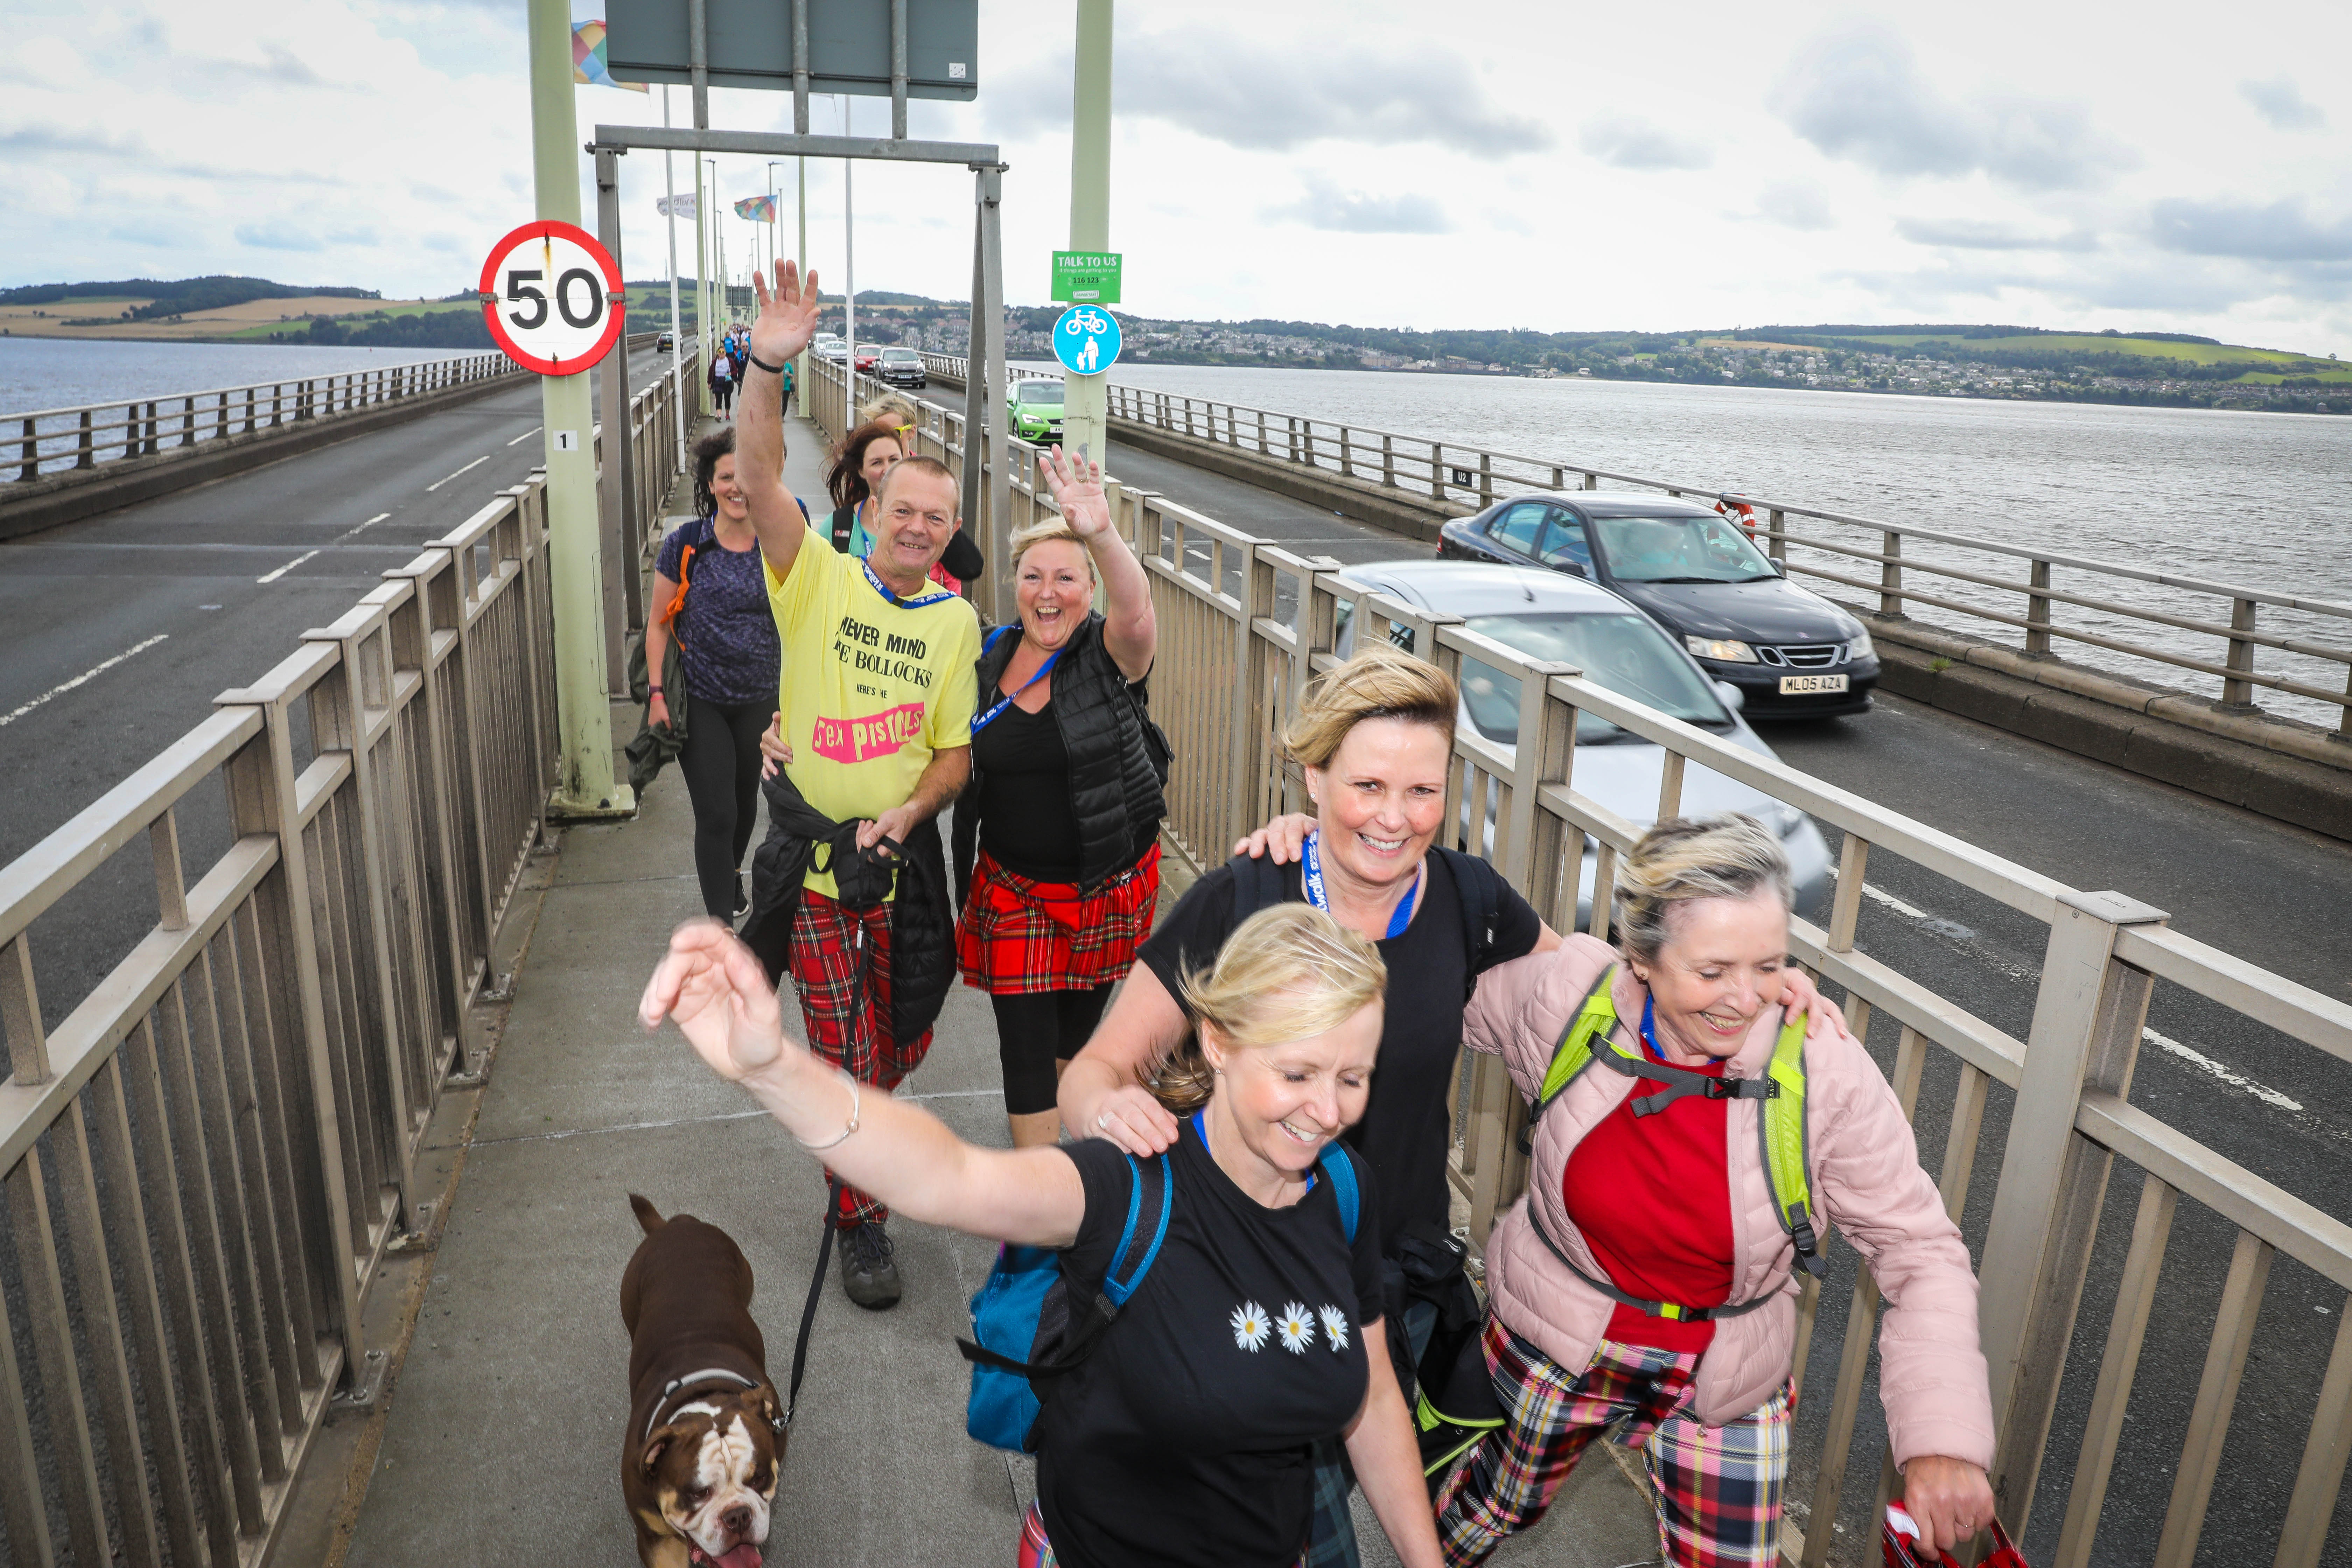 The Dundee Kiltwalk saw 3000 people join in